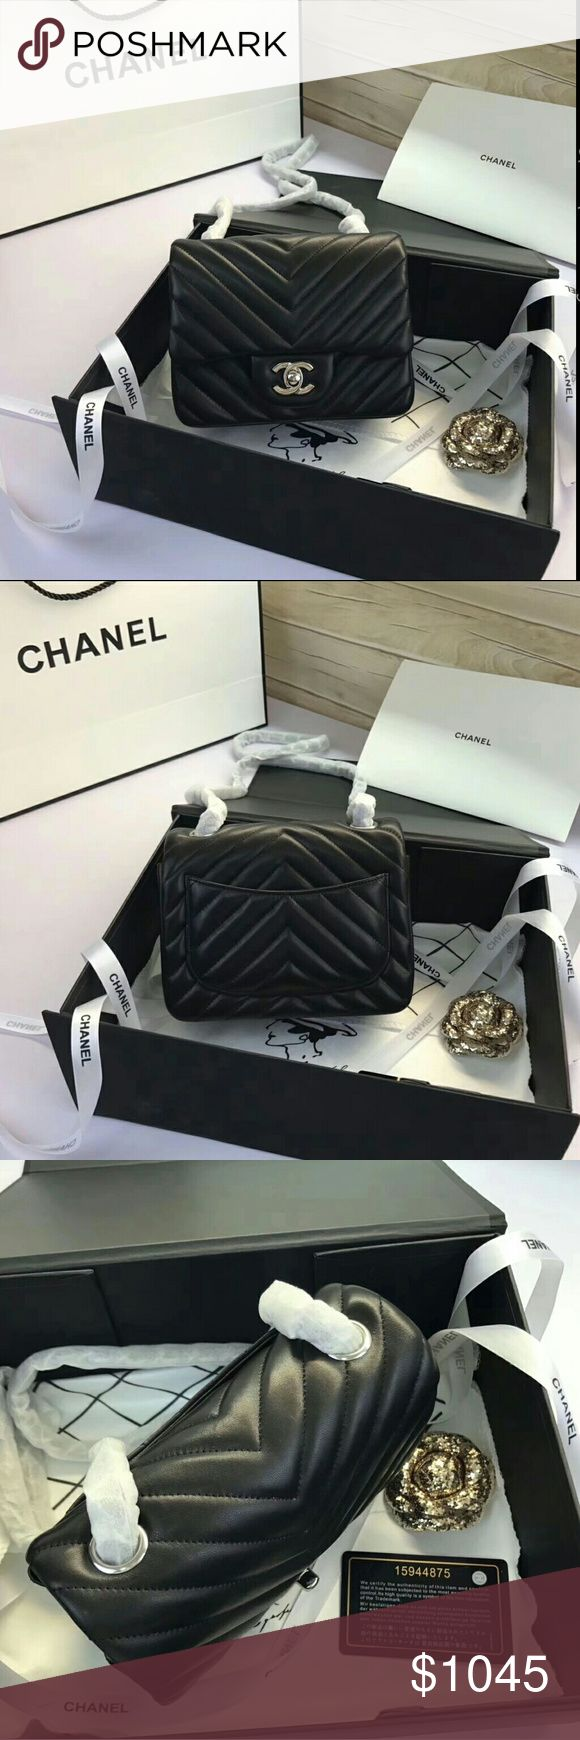 CHANEL Handbag *CYBER MONDAY SALE*  ALL ORDERS 10% OFF  If you would like to purchase this item or learn more about our product listings, please direct message us on Instagram:   @laluxlounge @laluxlounge @laluxlounge  Check out our customer reviews to ensure that your purchase will be worthwhile!  Product packaging and shipping times vary per item CHANEL Bags Shoulder Bags